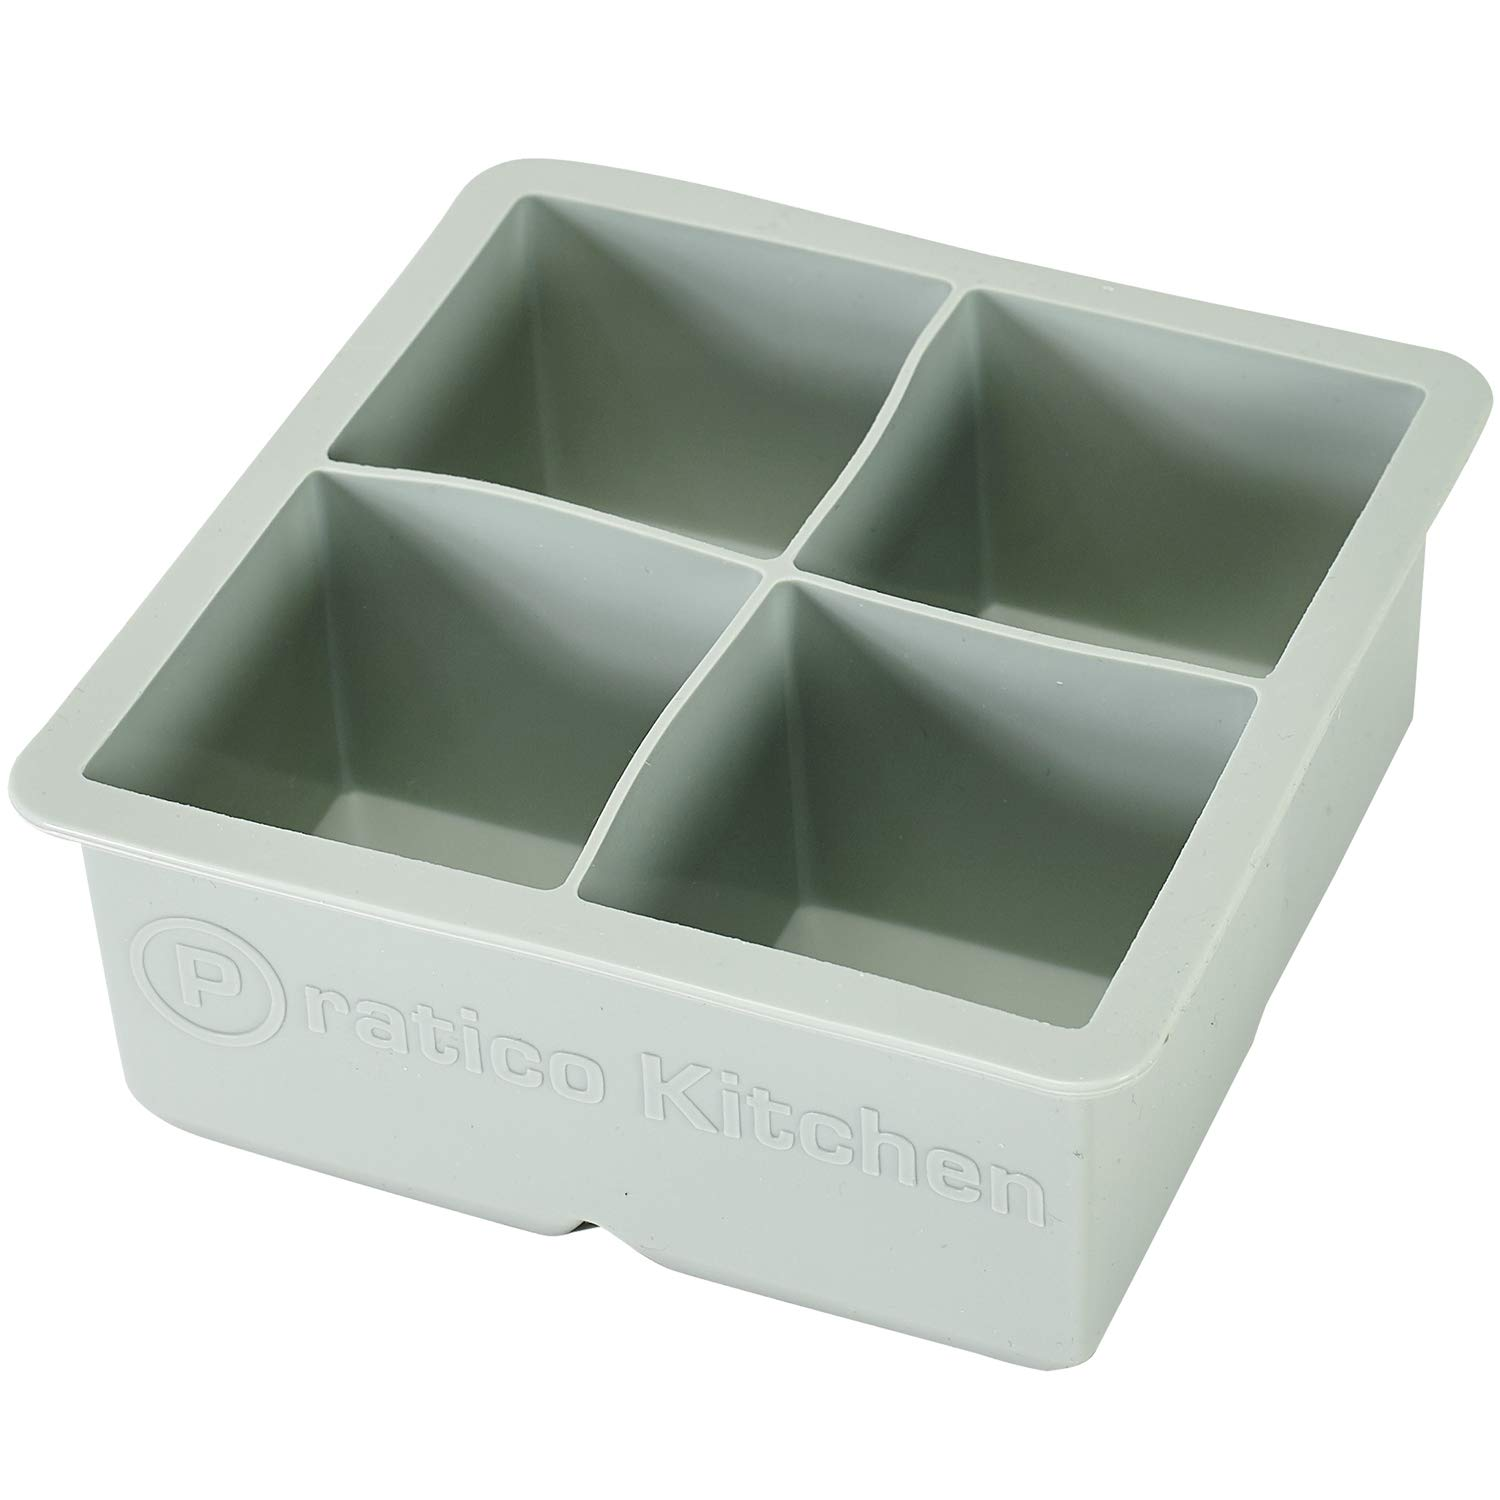 Large Ice Cube Mold - Makes 4 Jumbo 2.25 Inch Big Ice Cubes - Prevent Diluting Your Scotch, Whiskey, Cocktails - Keep Drinks Chilled with PratiCube Large Ice Cube Trays - 1 Pack